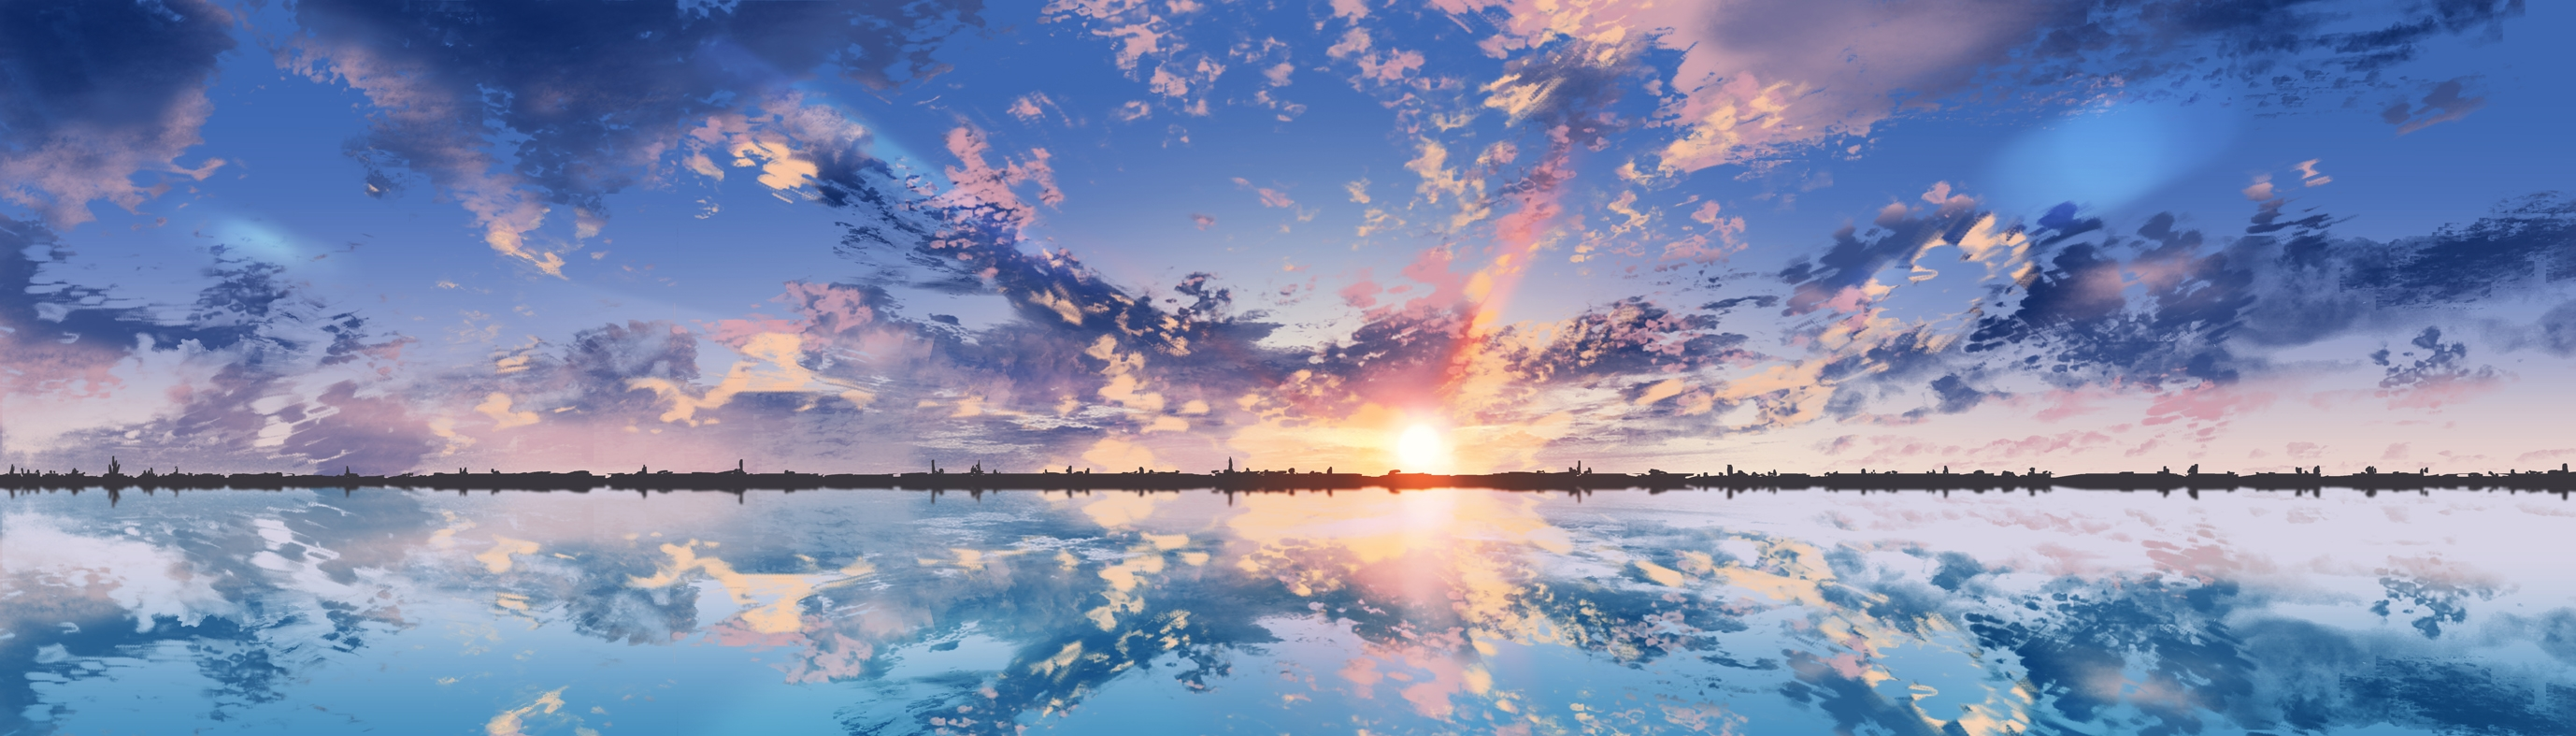 Anime Scenic, Clouds, Sunset, Reflection, Dual Monitor ...